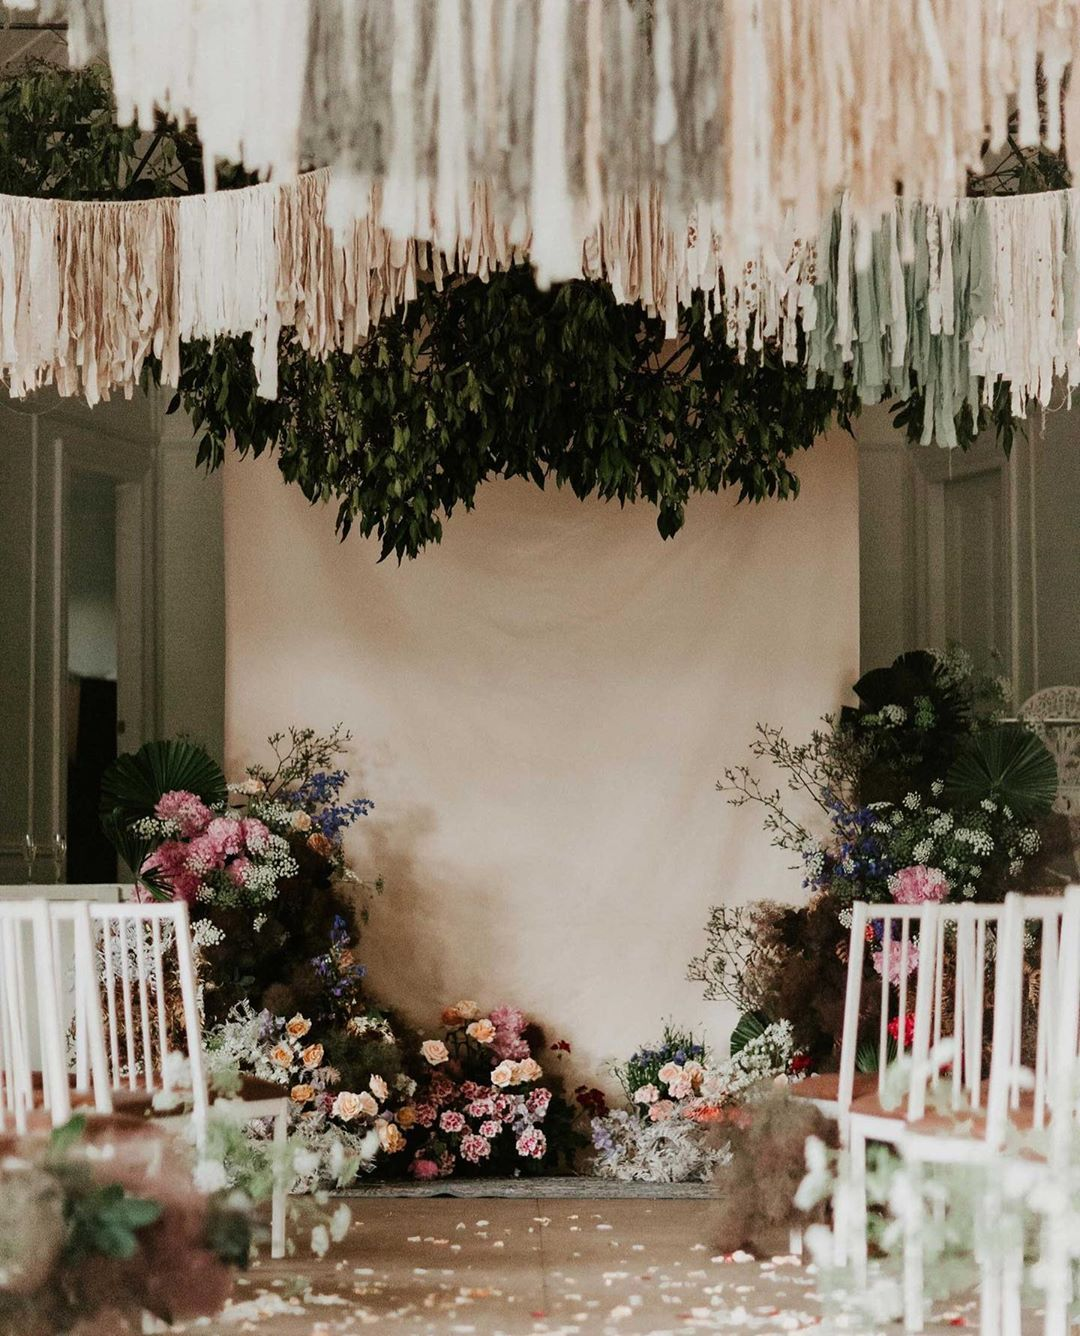 Diy tassels and florals for ceremony backdrop Wedding